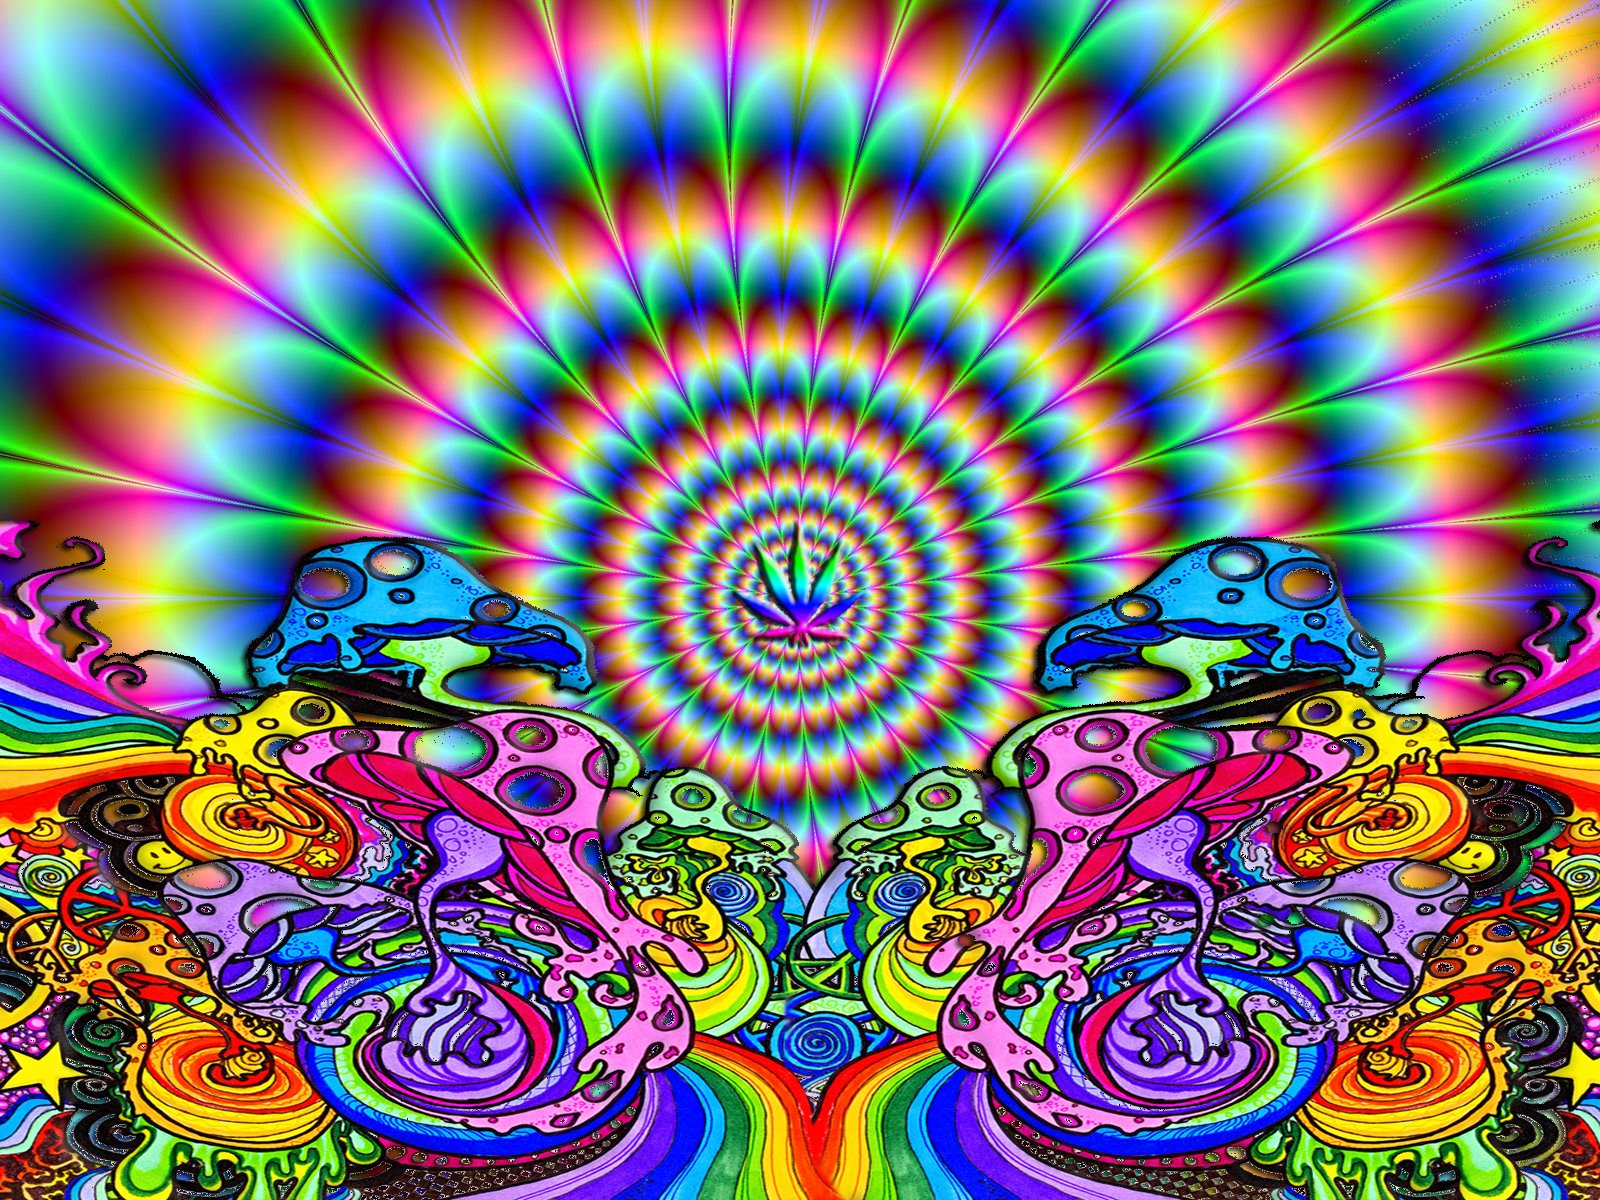 518 Psychedelic HD Wallpapers Background Images 1600x1200